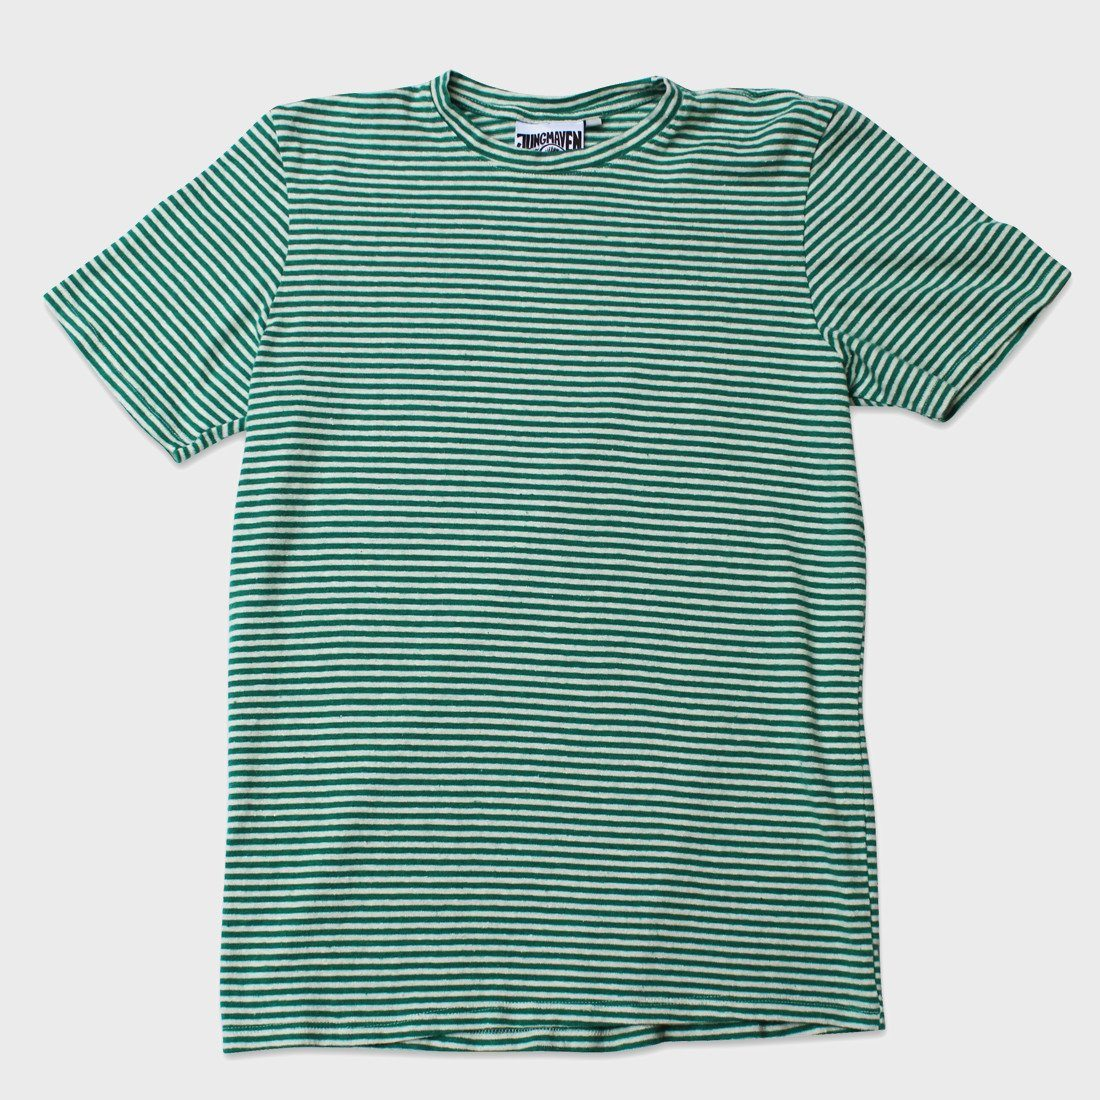 Jungmaven Yarn Dyed Short Sleeve T-shirt Basil Green Stripe